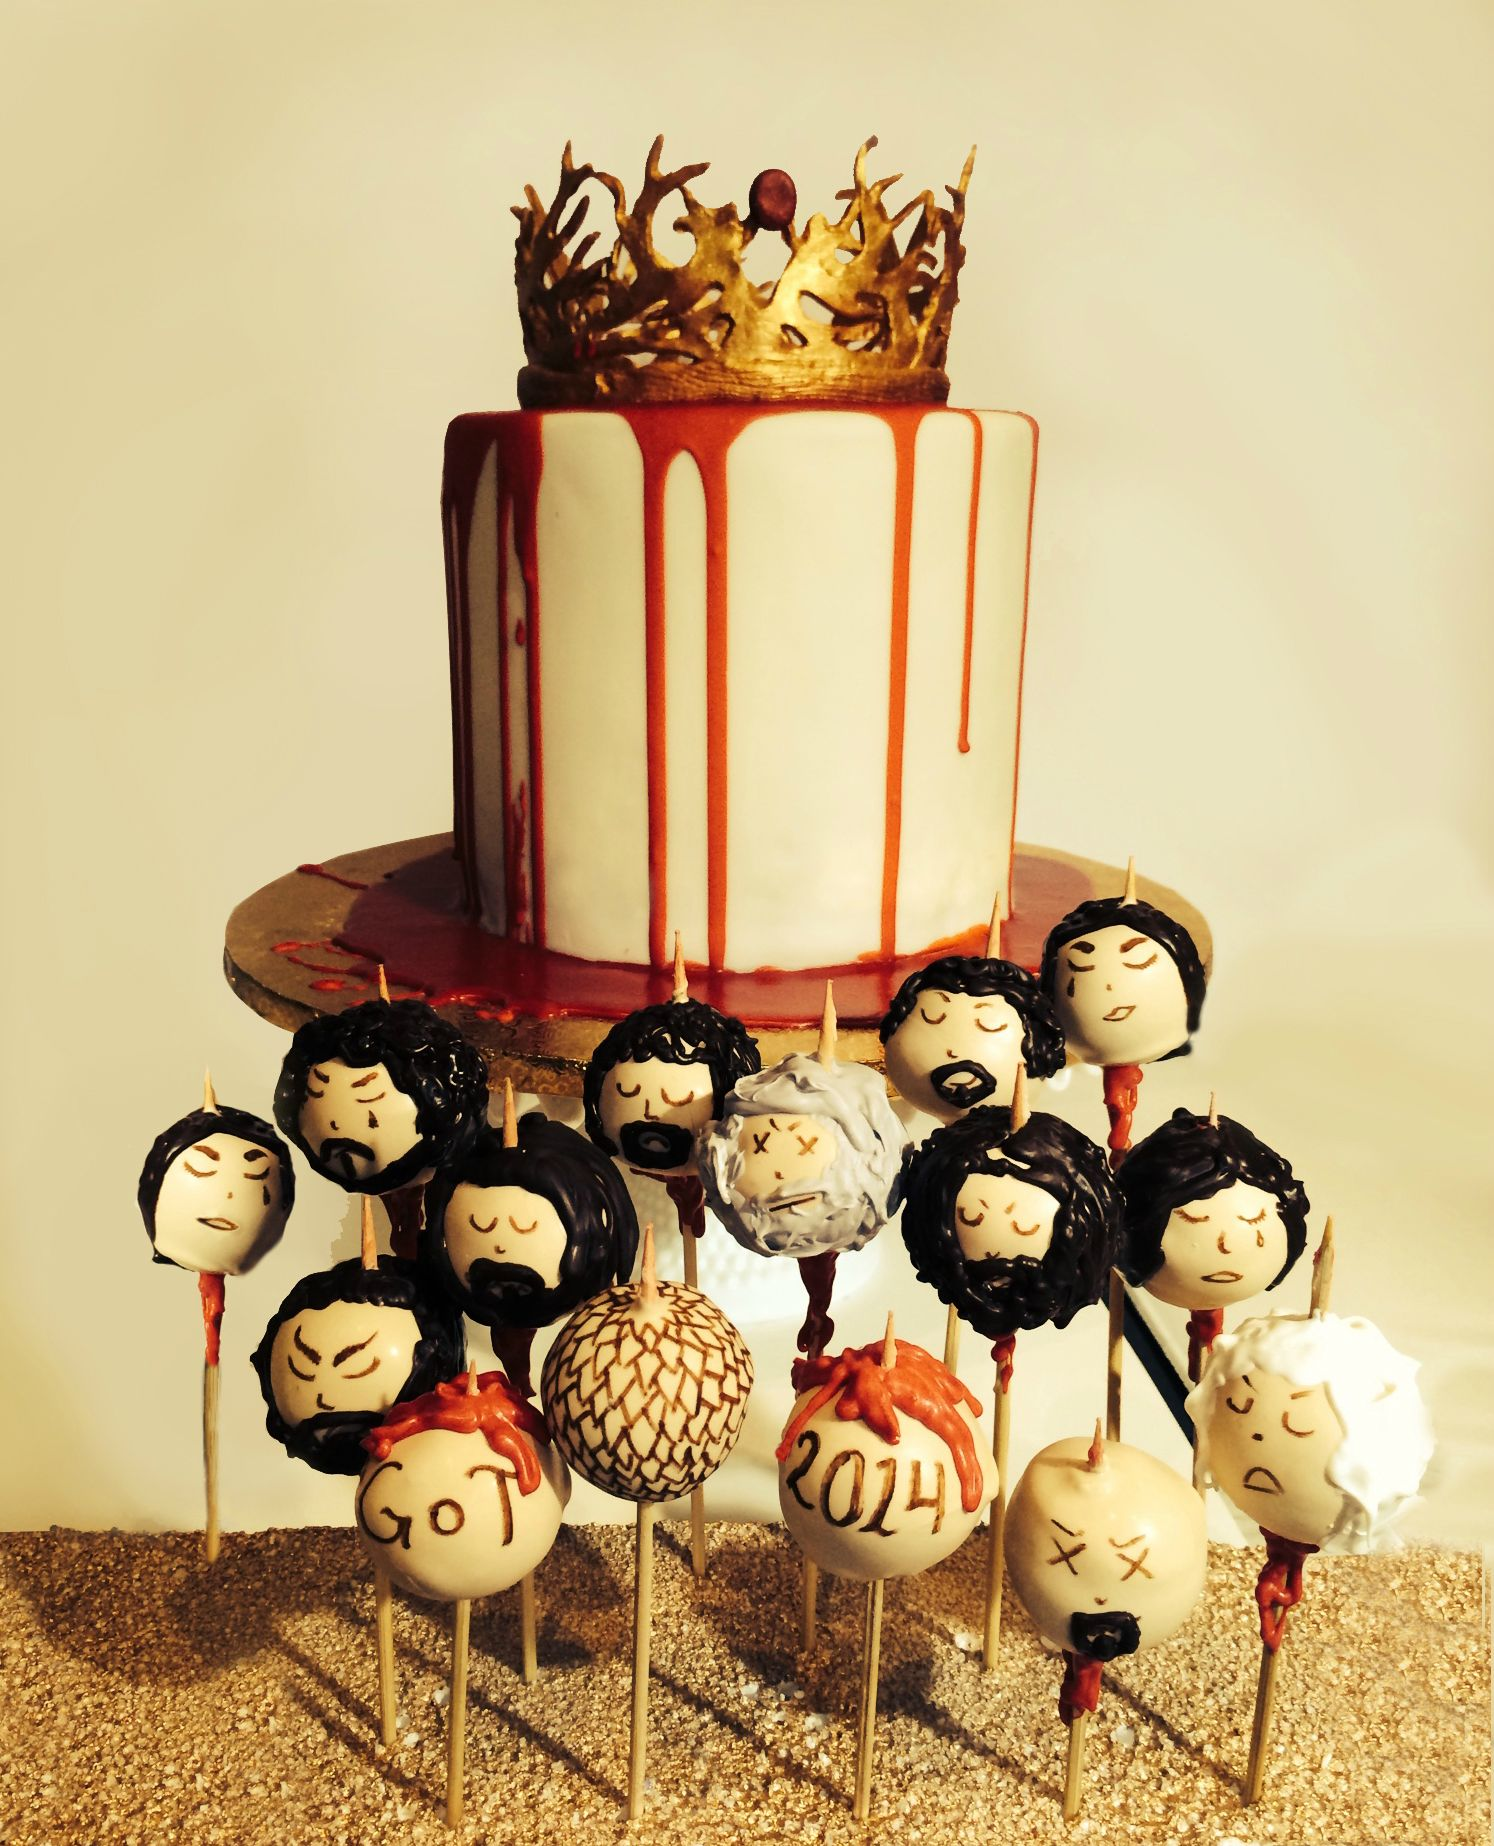 25-game-of-thrones-theme-designer-cakes-cupcakes-mumbai-19-cakepop-heads